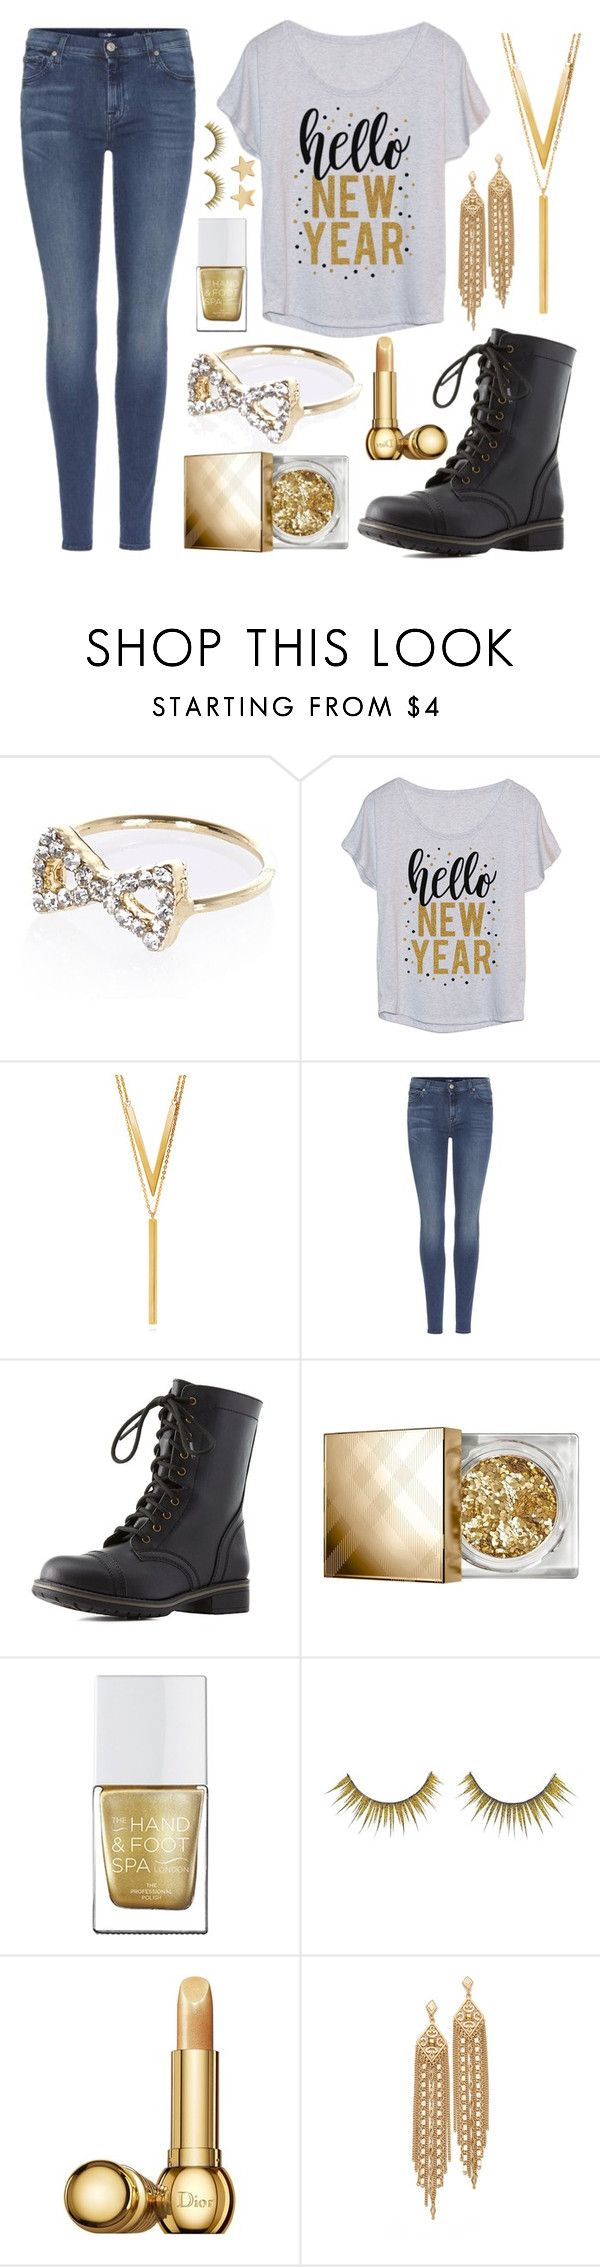 """""""Casual New Year's Eve outfit #2v"""" by potato-cloud on Polyvore featuring River Island, LC Trendz, BERRICLE, 7 For All Mankind, Charlotte Russe, Burberry, Forever 21, Christian Dior, Capwell + Co and Jennifer Meyer Jewelry"""